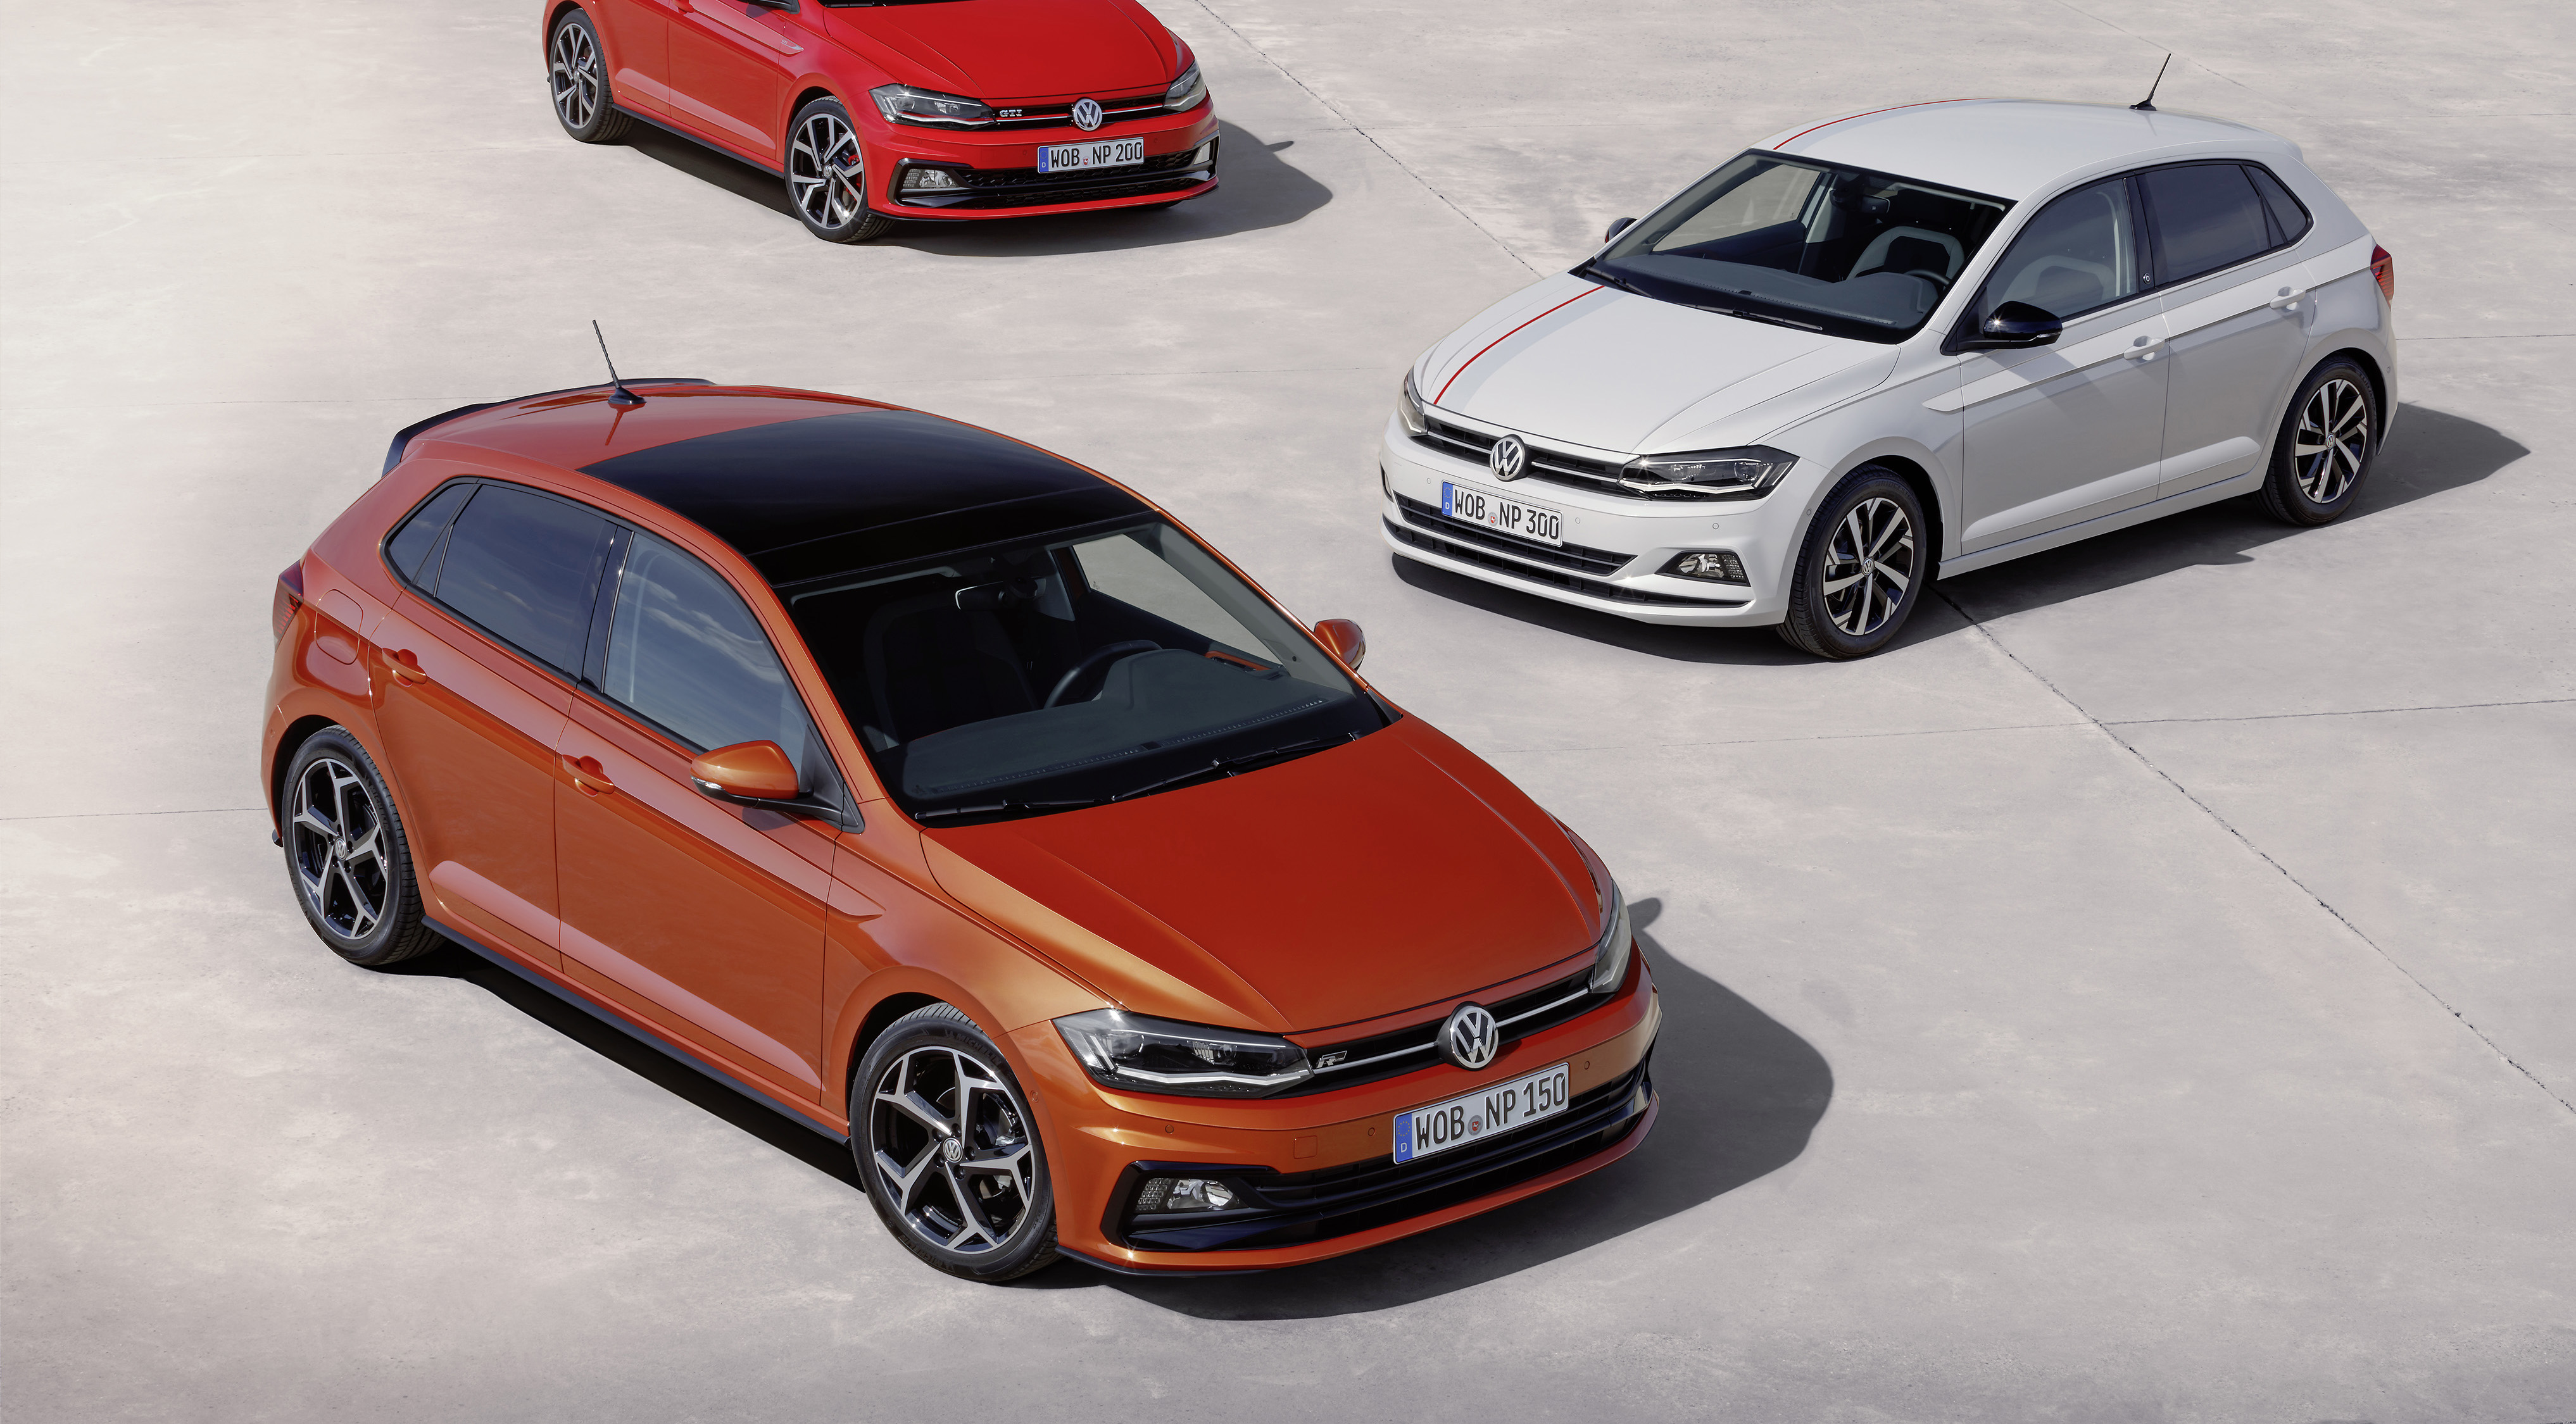 news 2017 volkswagen polo revealed edges closer to golf. Black Bedroom Furniture Sets. Home Design Ideas